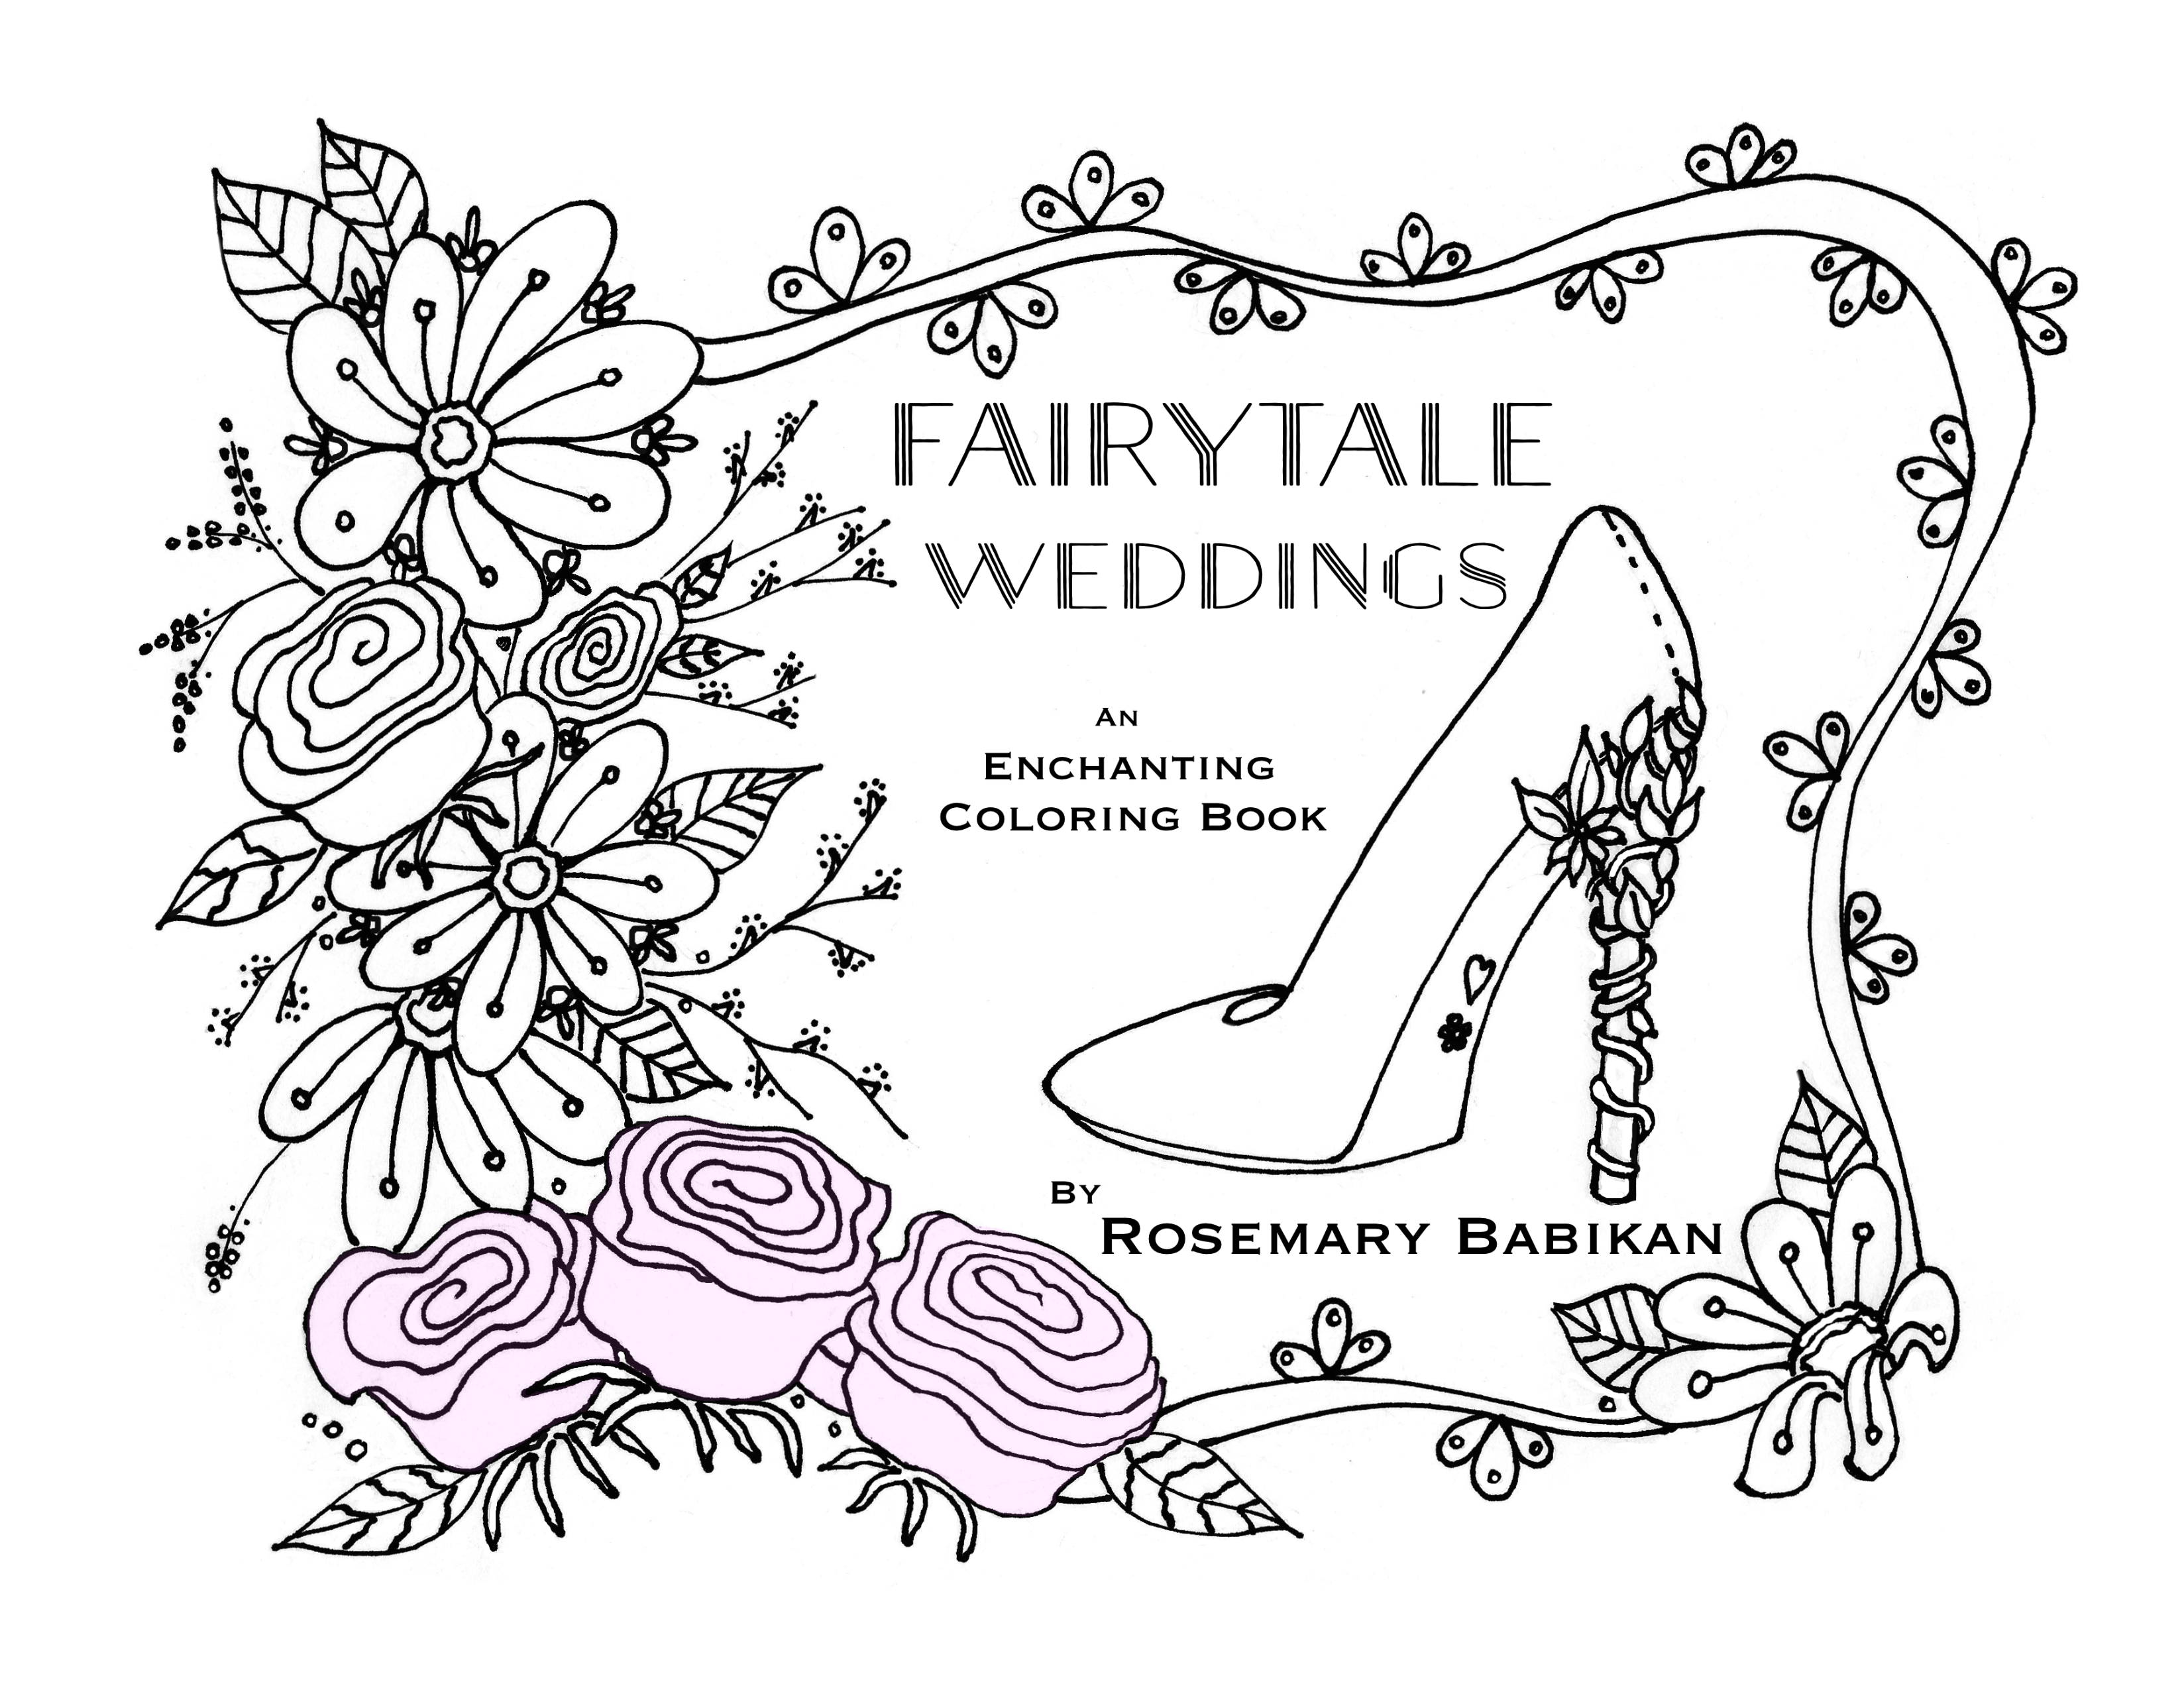 Book Cover  of Fairytale Weddings, An Enchanting Coloring Book . 30 Adult Coloring Pages, beautifully hand-drawn. #adultcoloringpages #adultcoloringbooks #coloringforadults  #weddingcoloringbooks